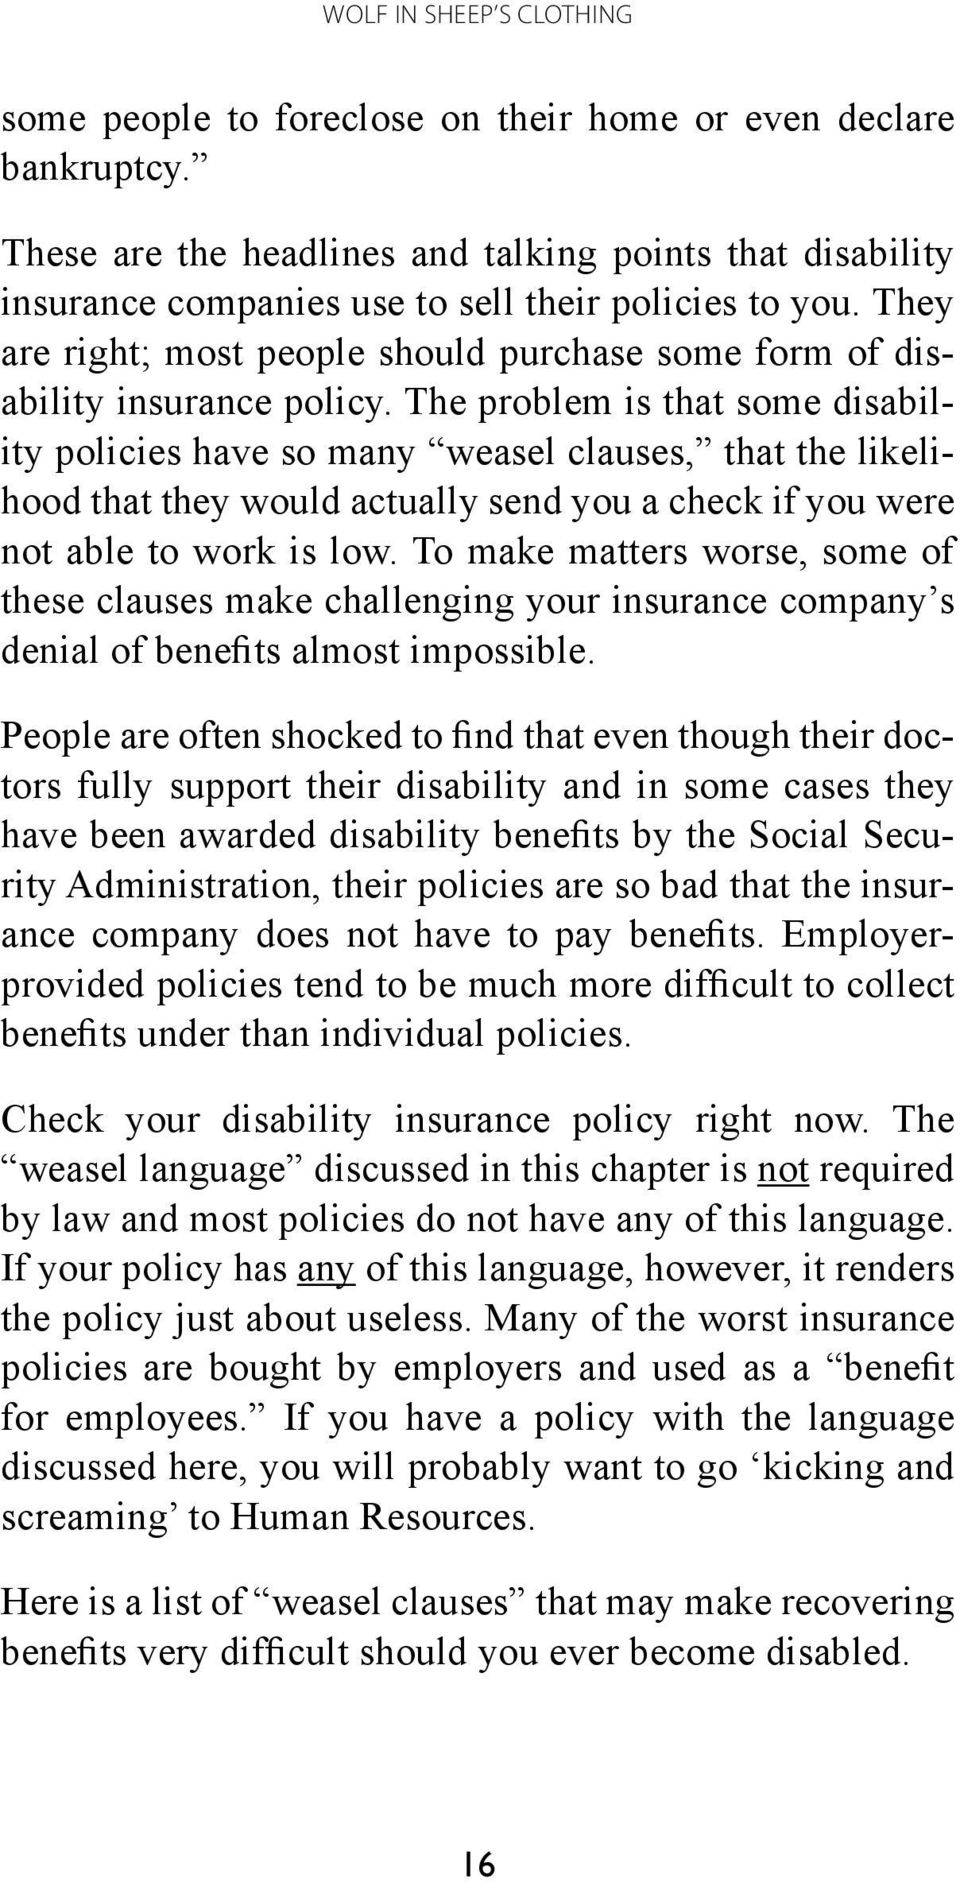 The problem is that some disability policies have so many weasel clauses, that the likelihood that they would actually send you a check if you were not able to work is low.